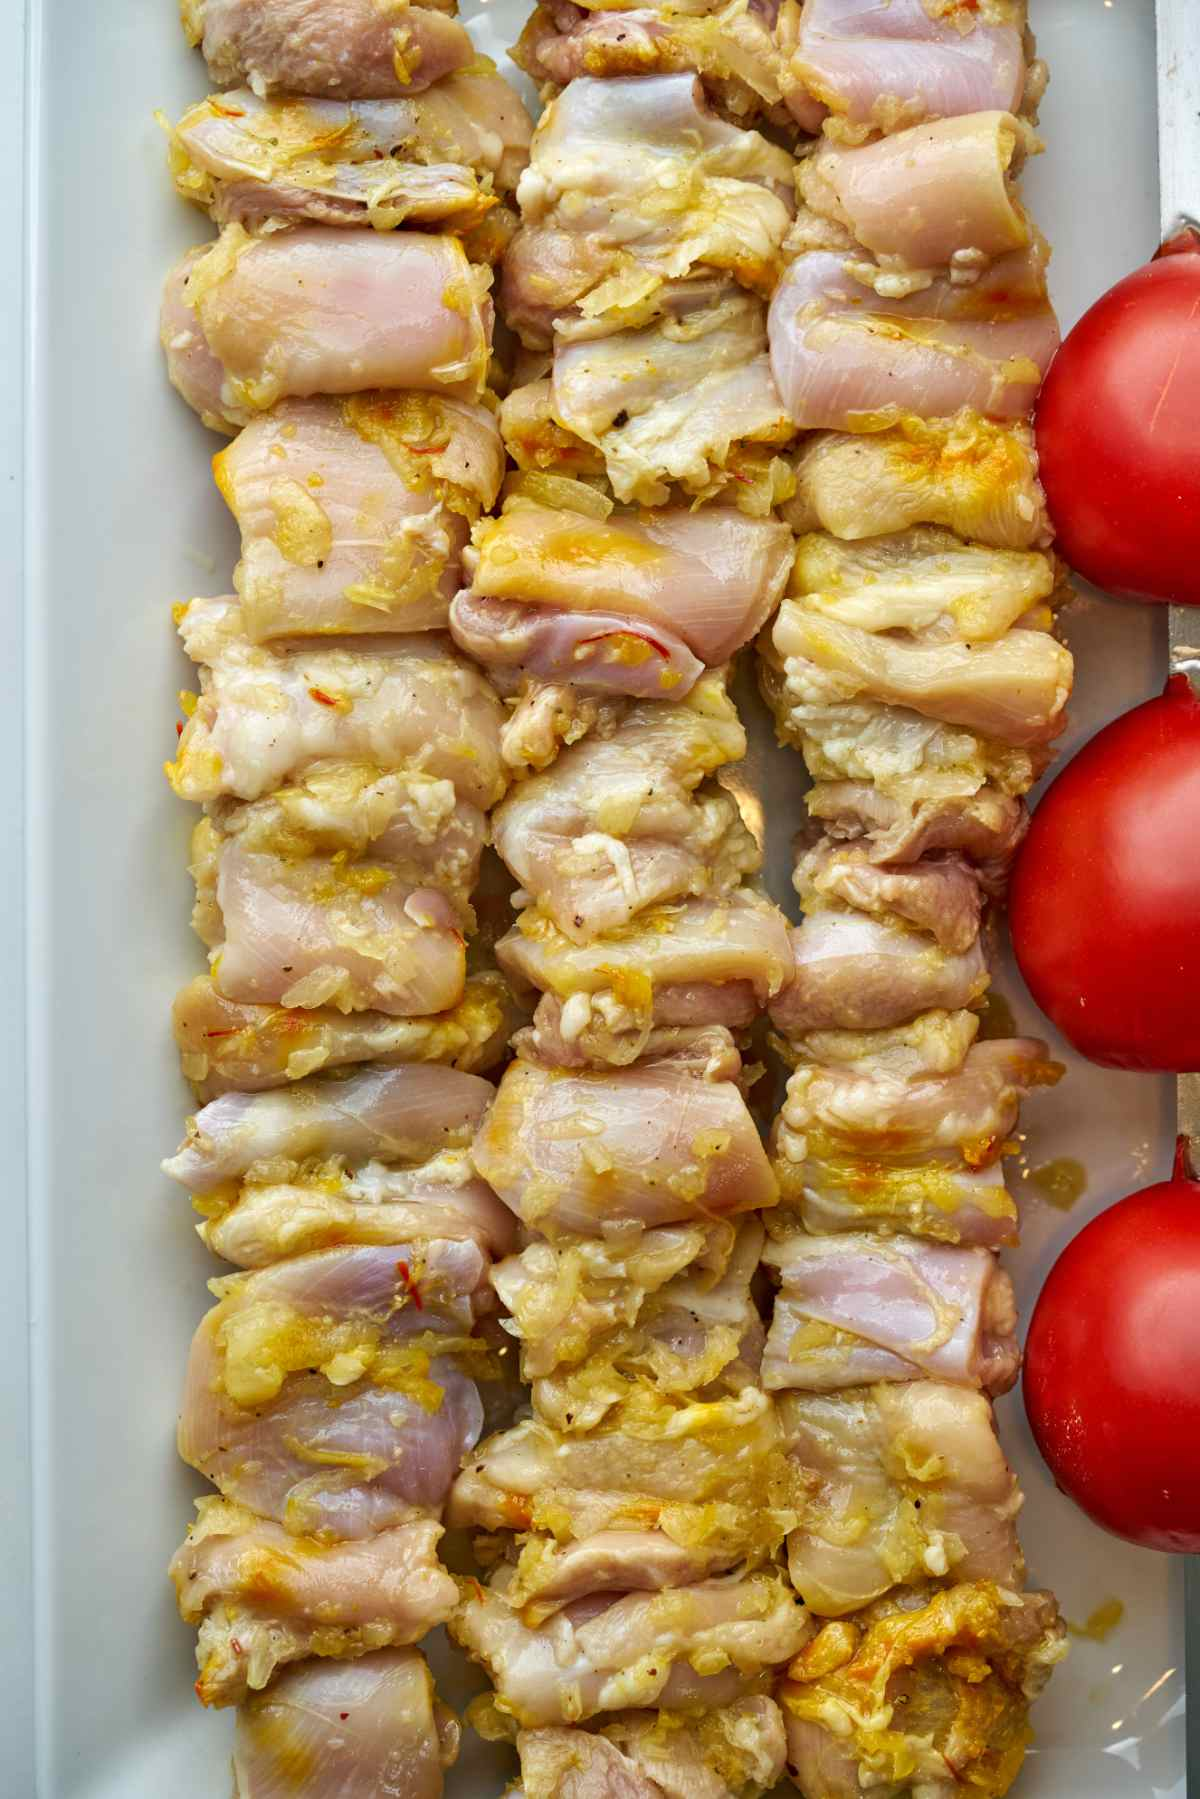 Raw chicken kabobs next to tomatoes.